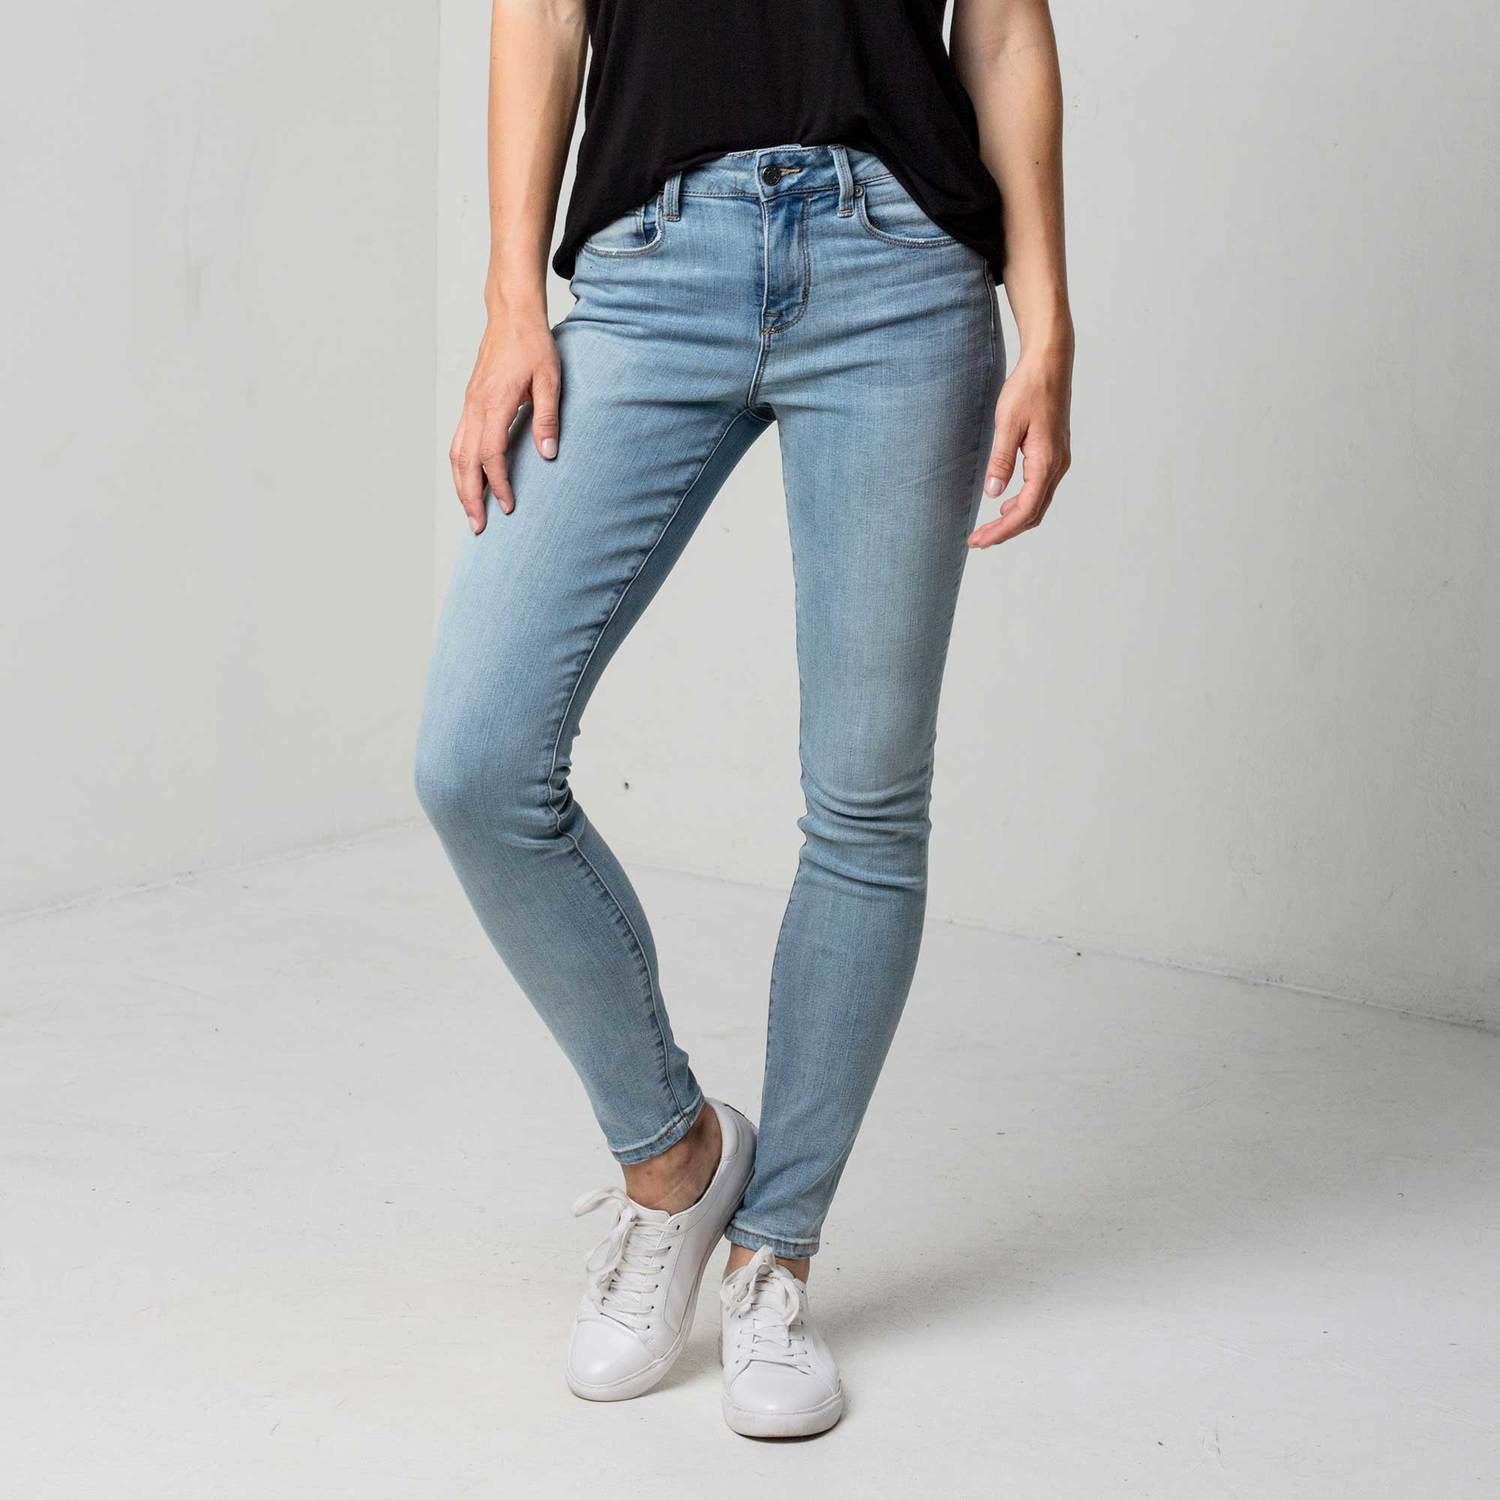 Womens High Waisted Skinny Jeans In Light Vintage $95 | DSTLD